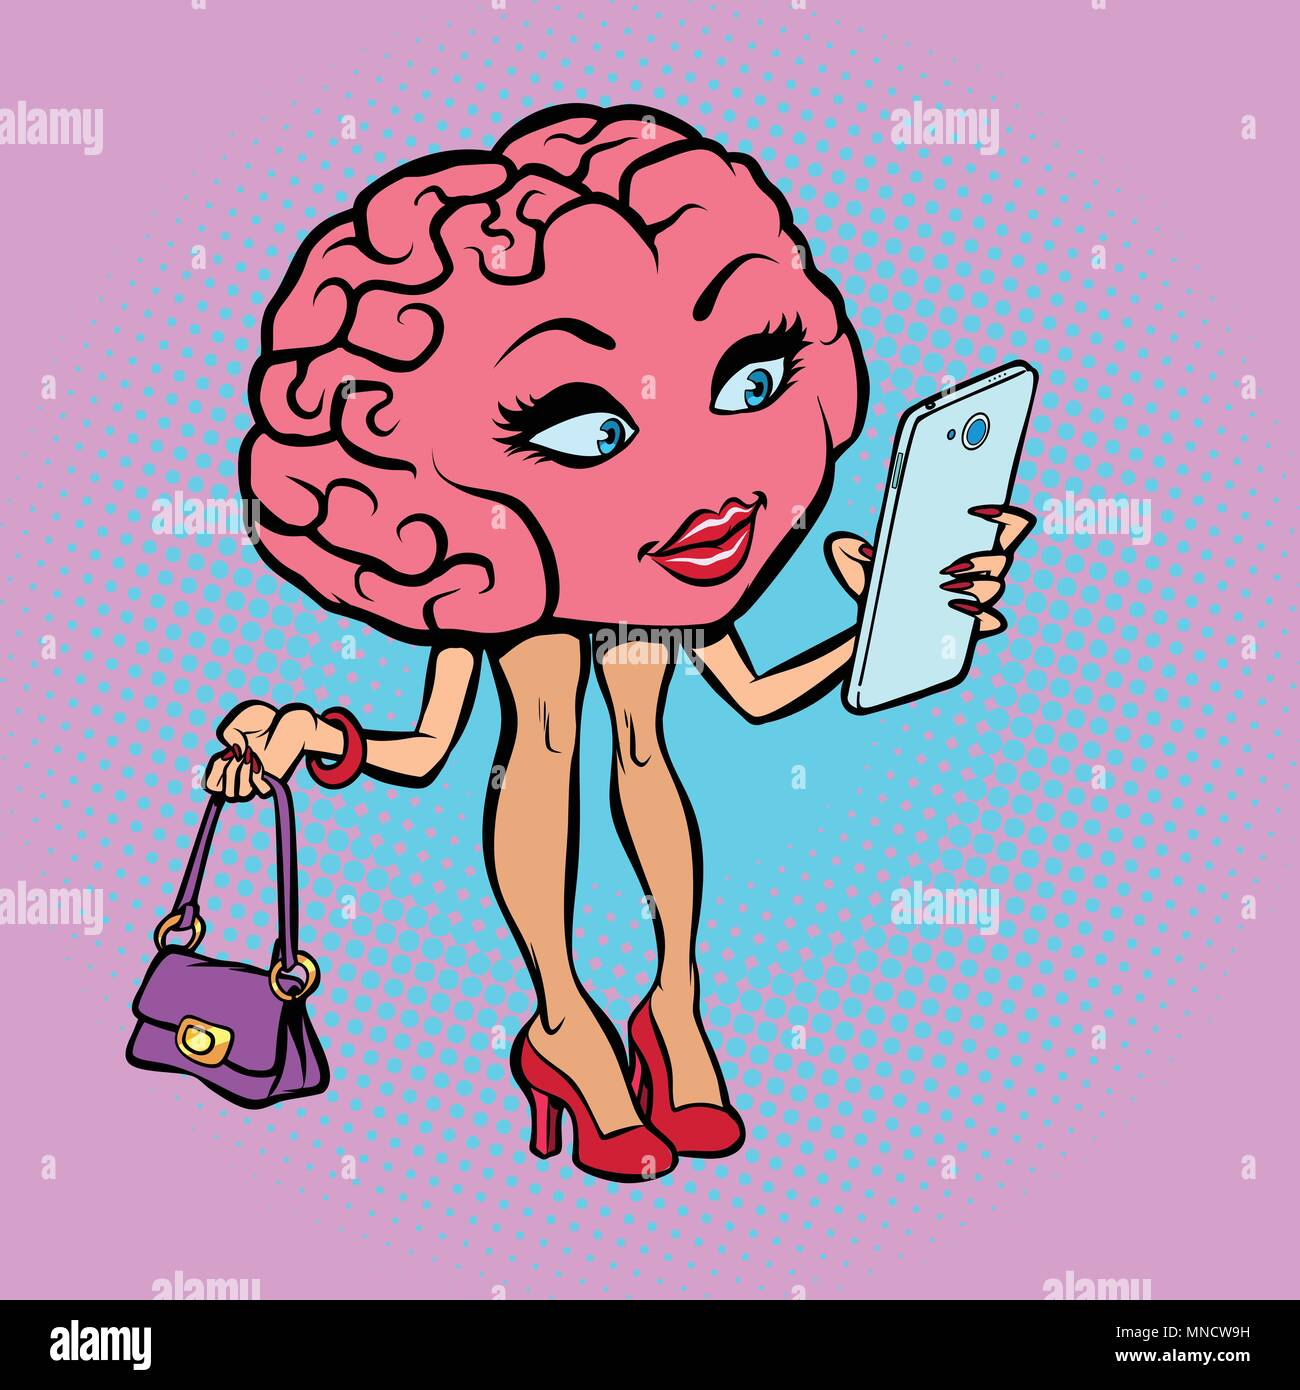 Character brain woman with a smartphone - Stock Image